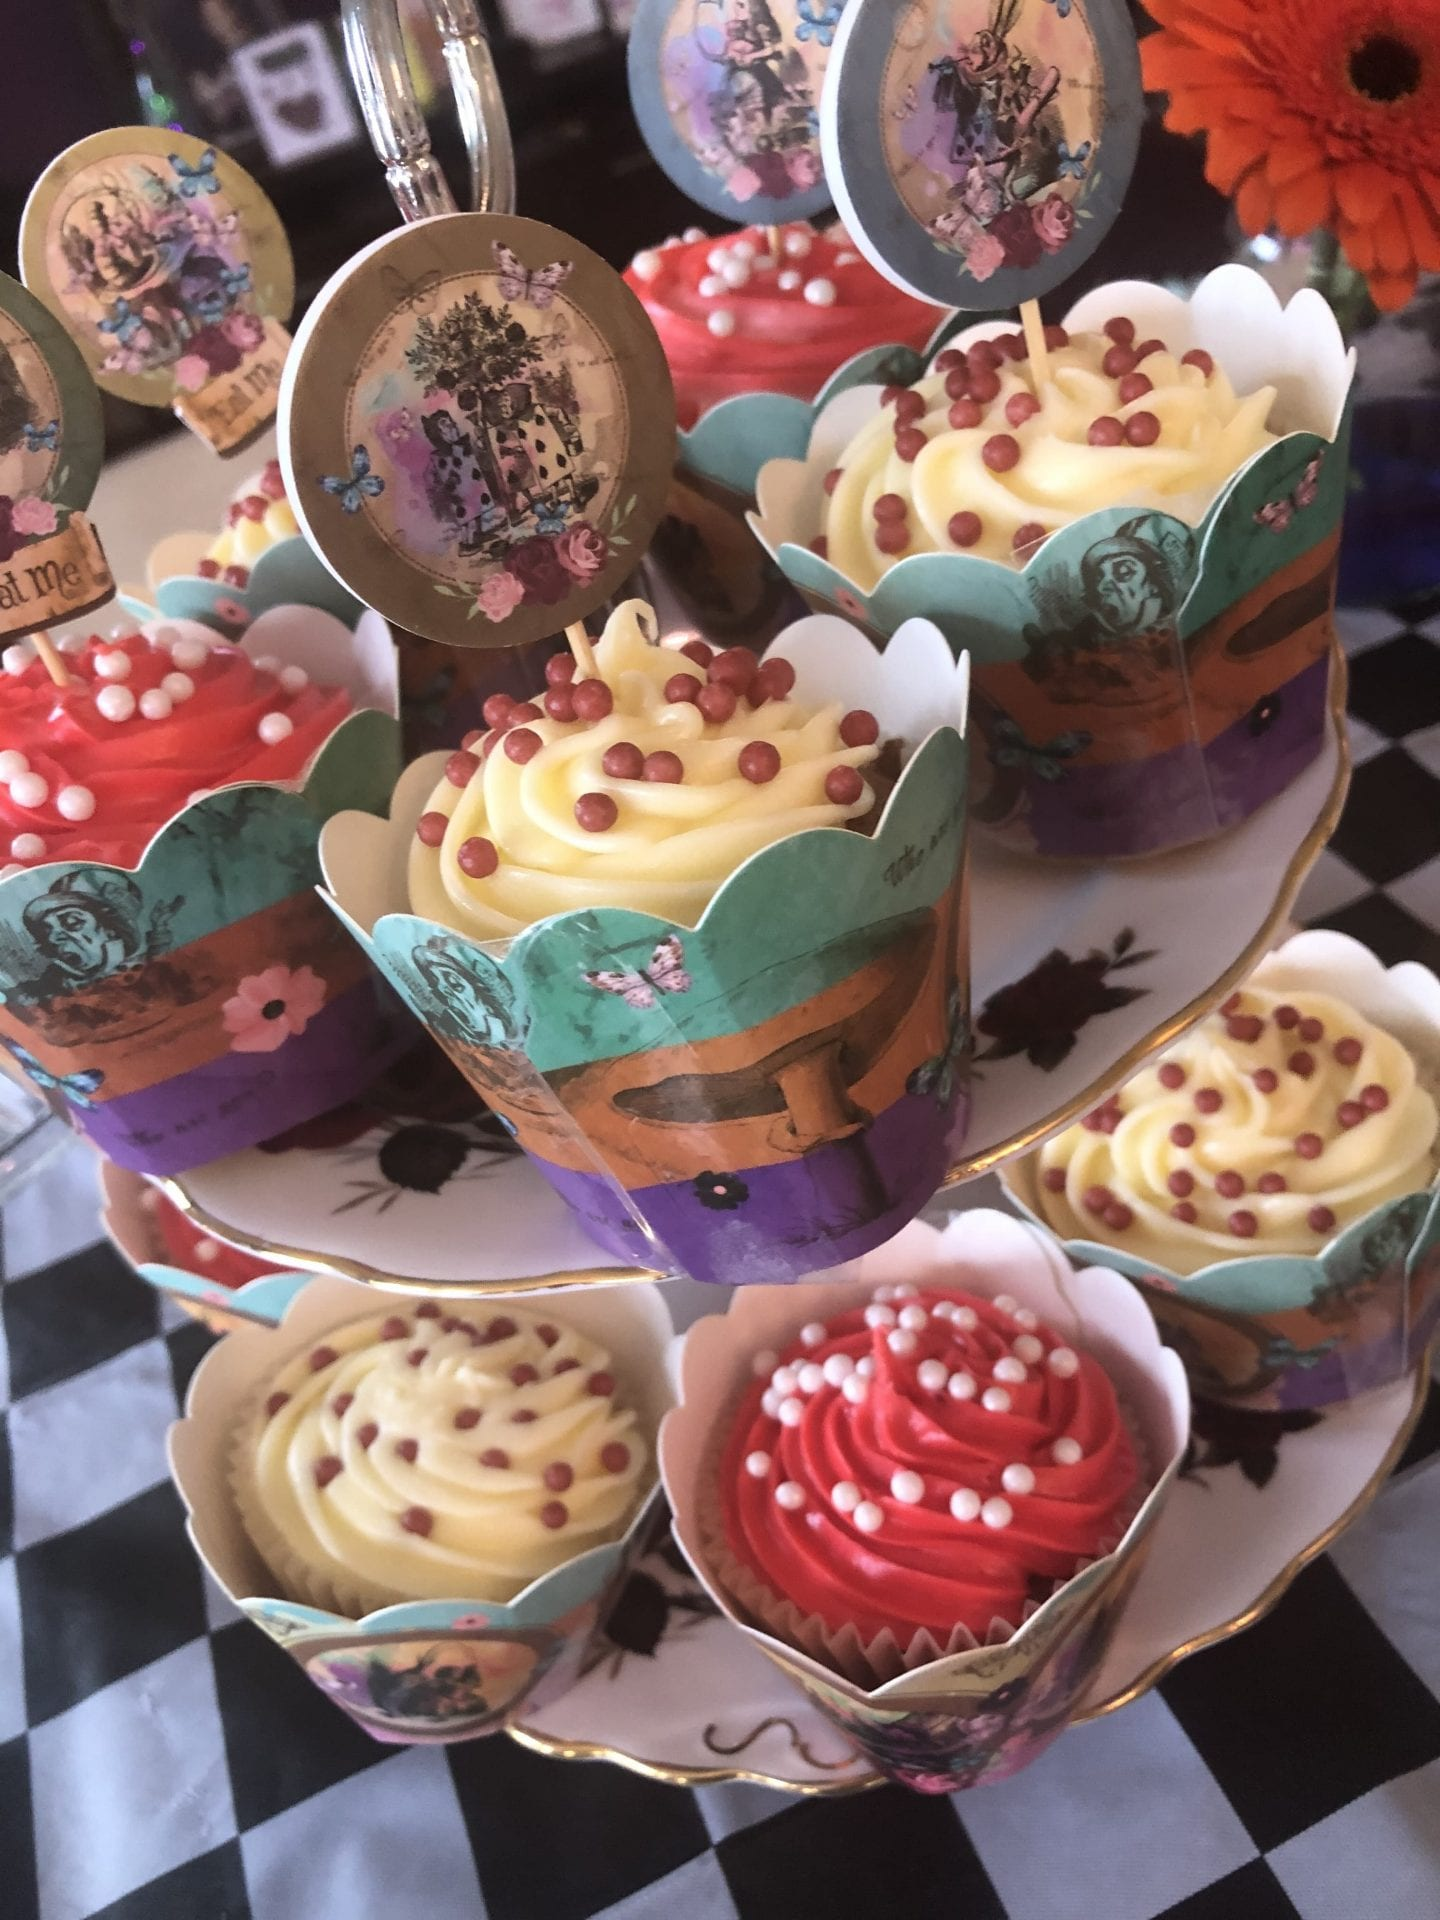 Red and white Alice in Wonderland themed cupcakes